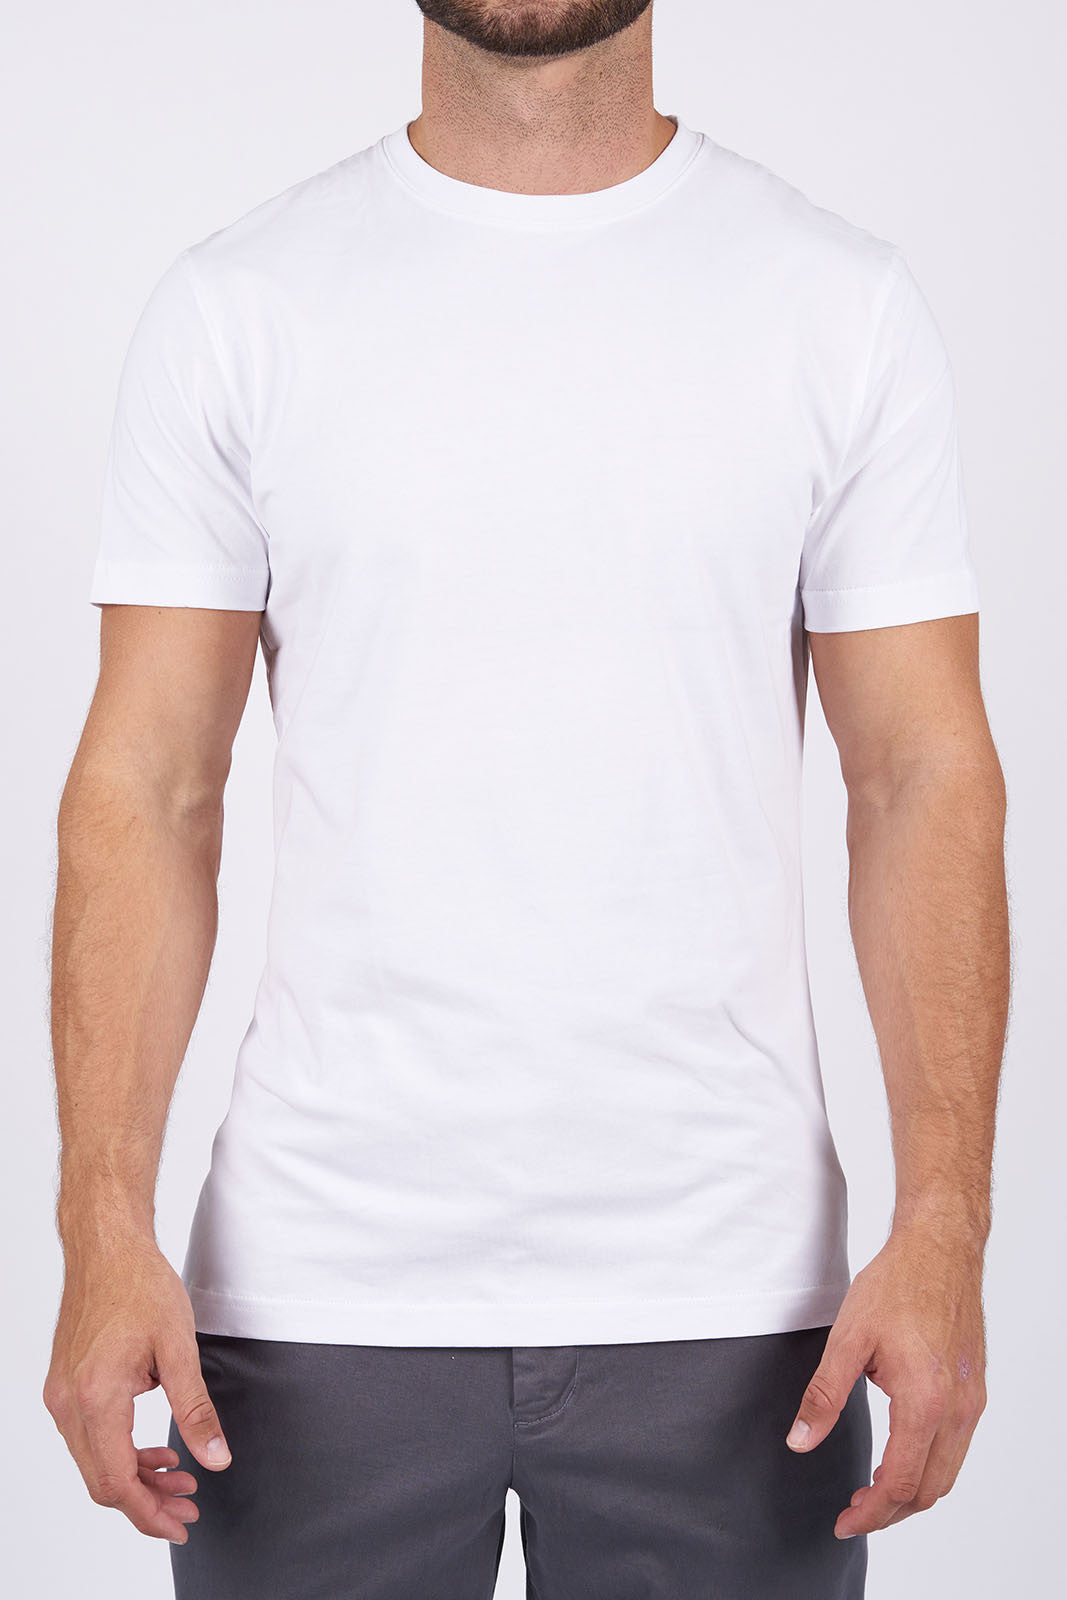 White Long-Staple Cotton T-Shirt: Crew Neck